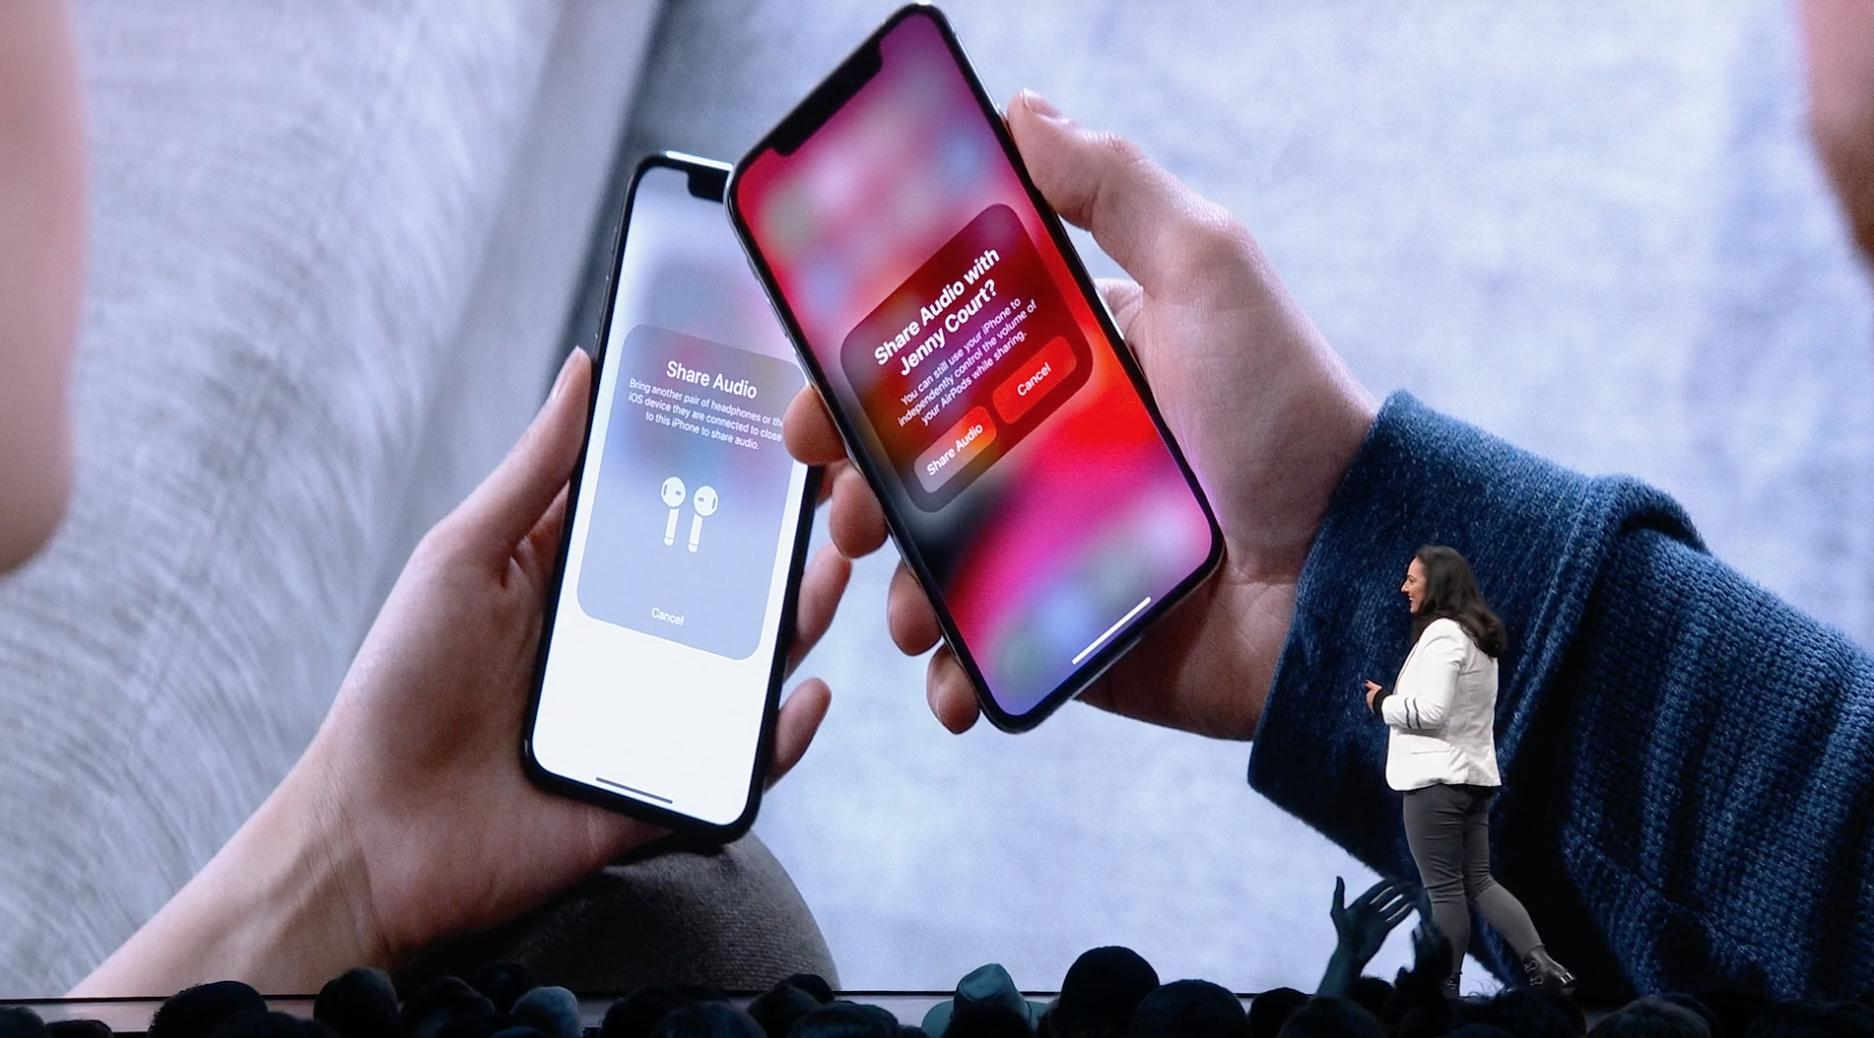 Compartir audio entre dos iPhones con iOS 13